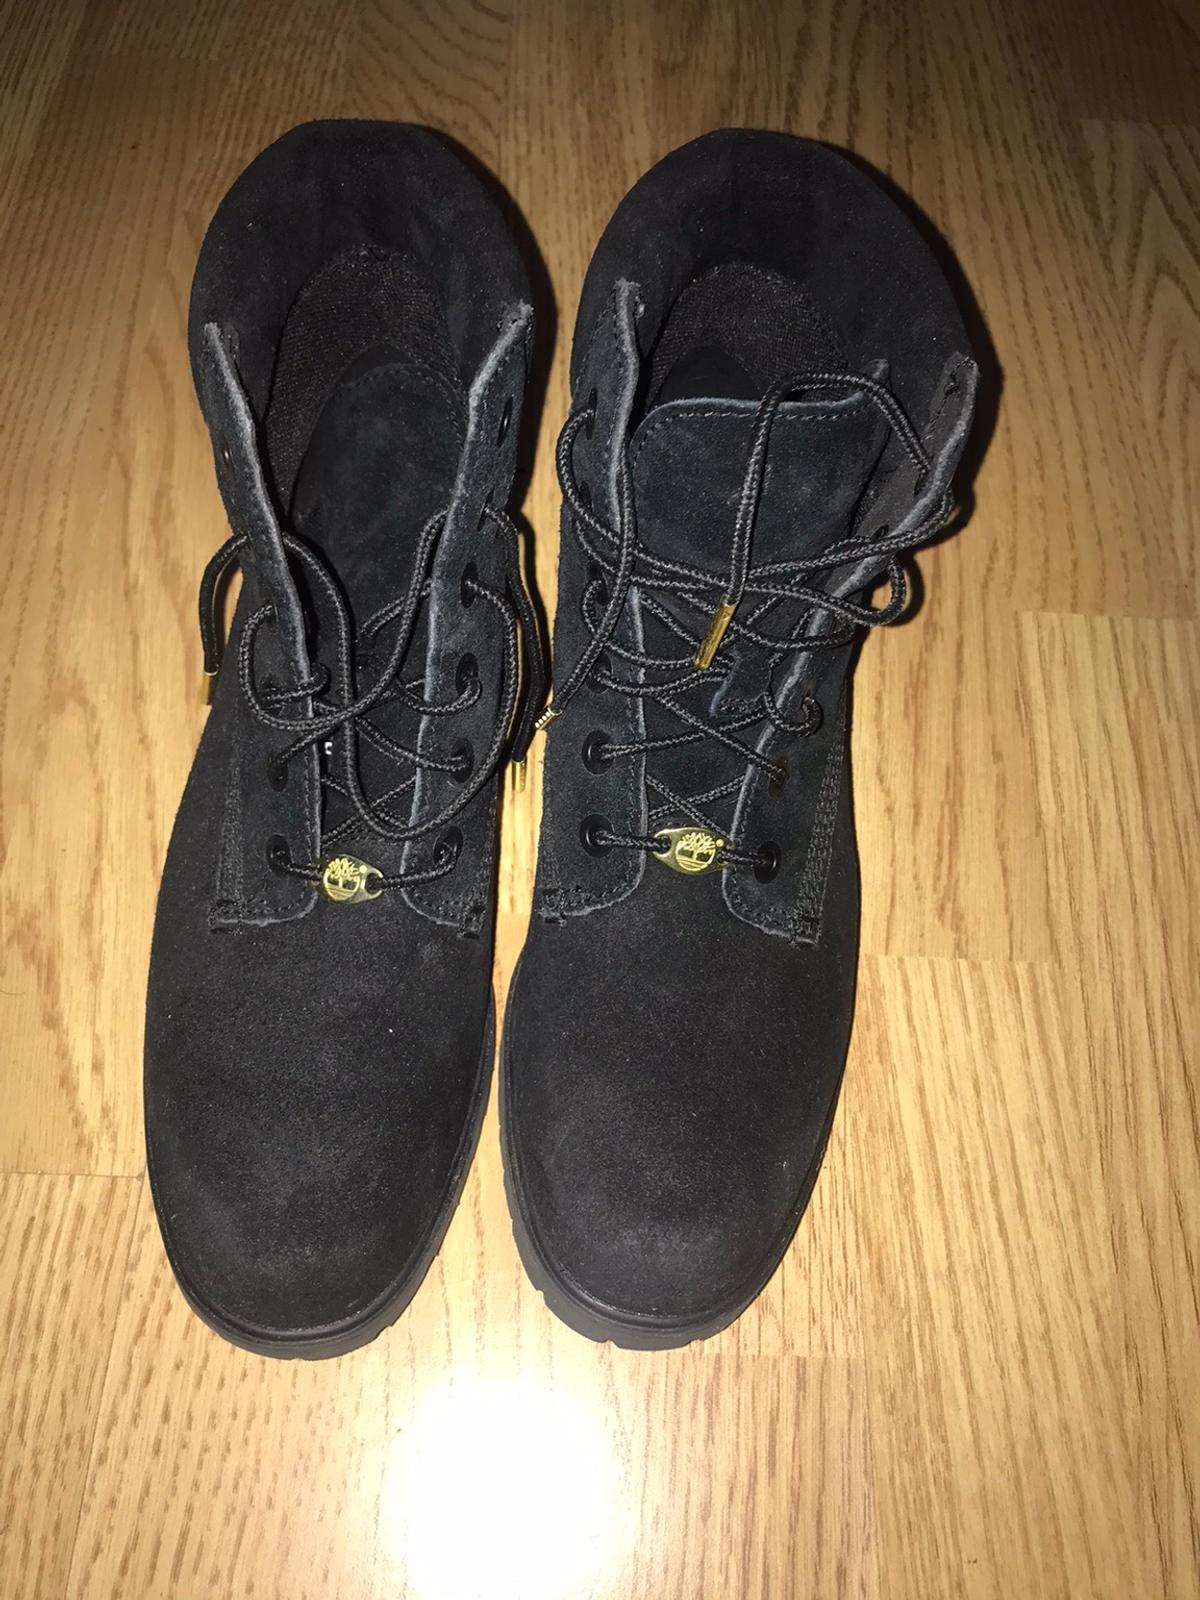 These timberland suede boots have a gold lace front and tip and are slim in style, comfortable wear but way too tight for me would say come up as a 5-5.5 more than a 6/ a small 6